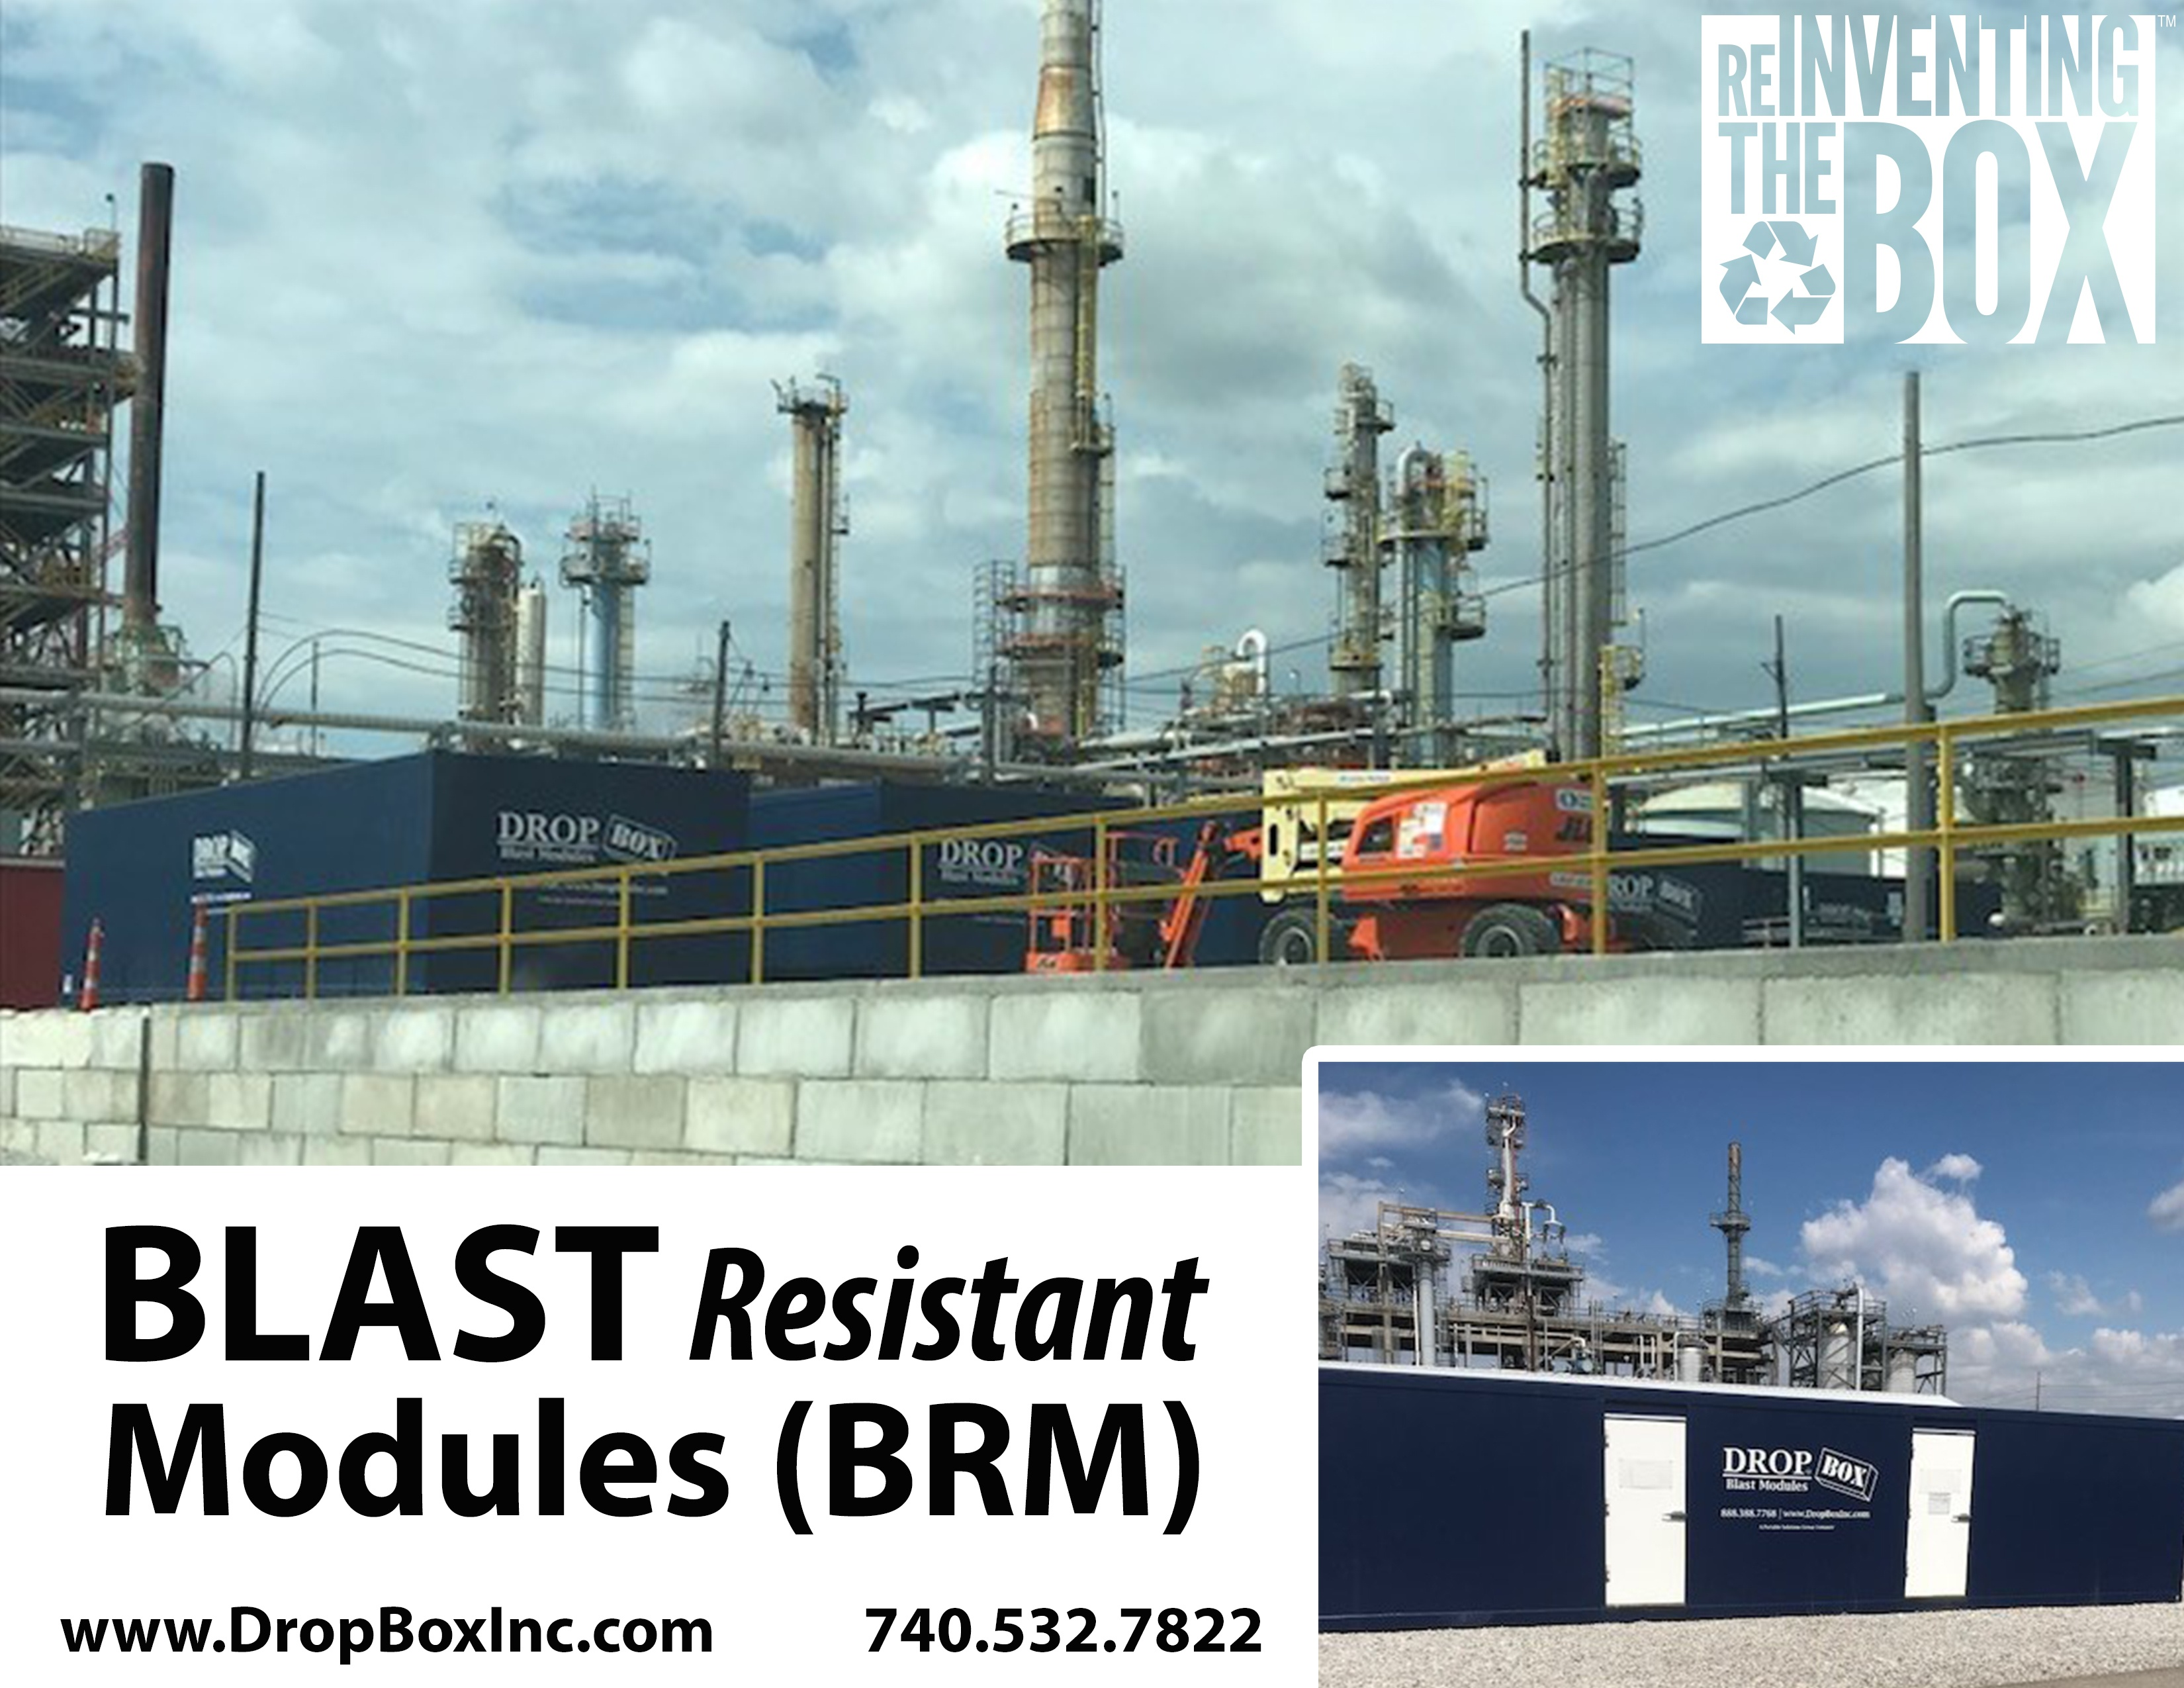 DropBox Inc, blast resistant office, BRM, custom blast resistant modules, modular blast resistant break room, blast module, blast modules, blast resistant modules